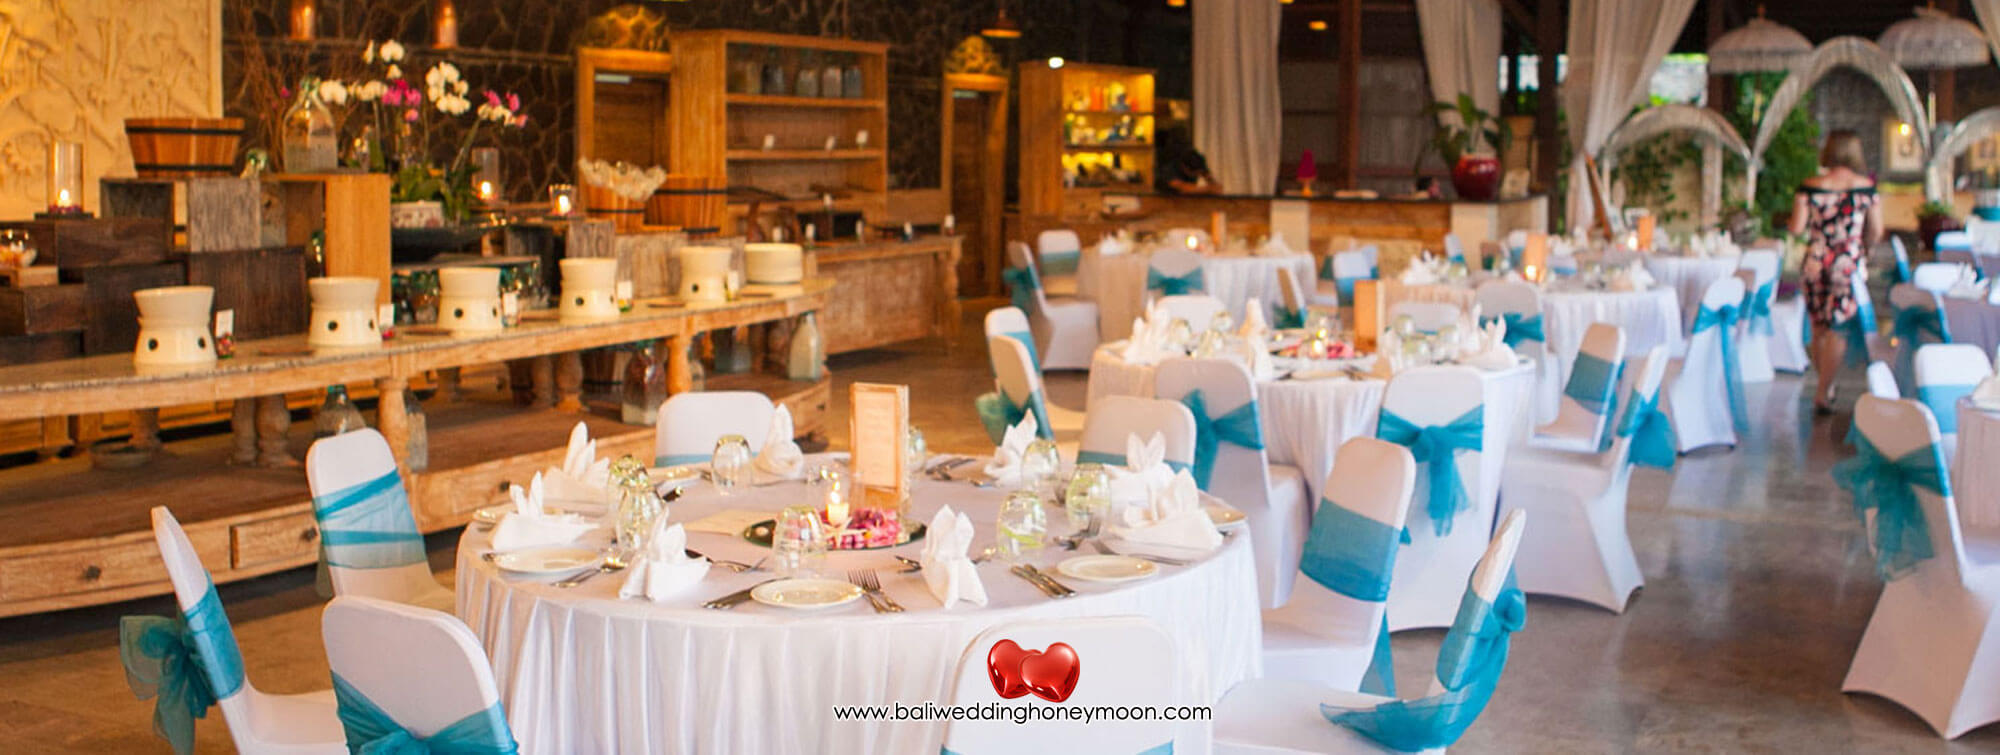 baliweddingdecoration-baliweddinghoneymoon-baliweddingorganizer-baliweddingplanner